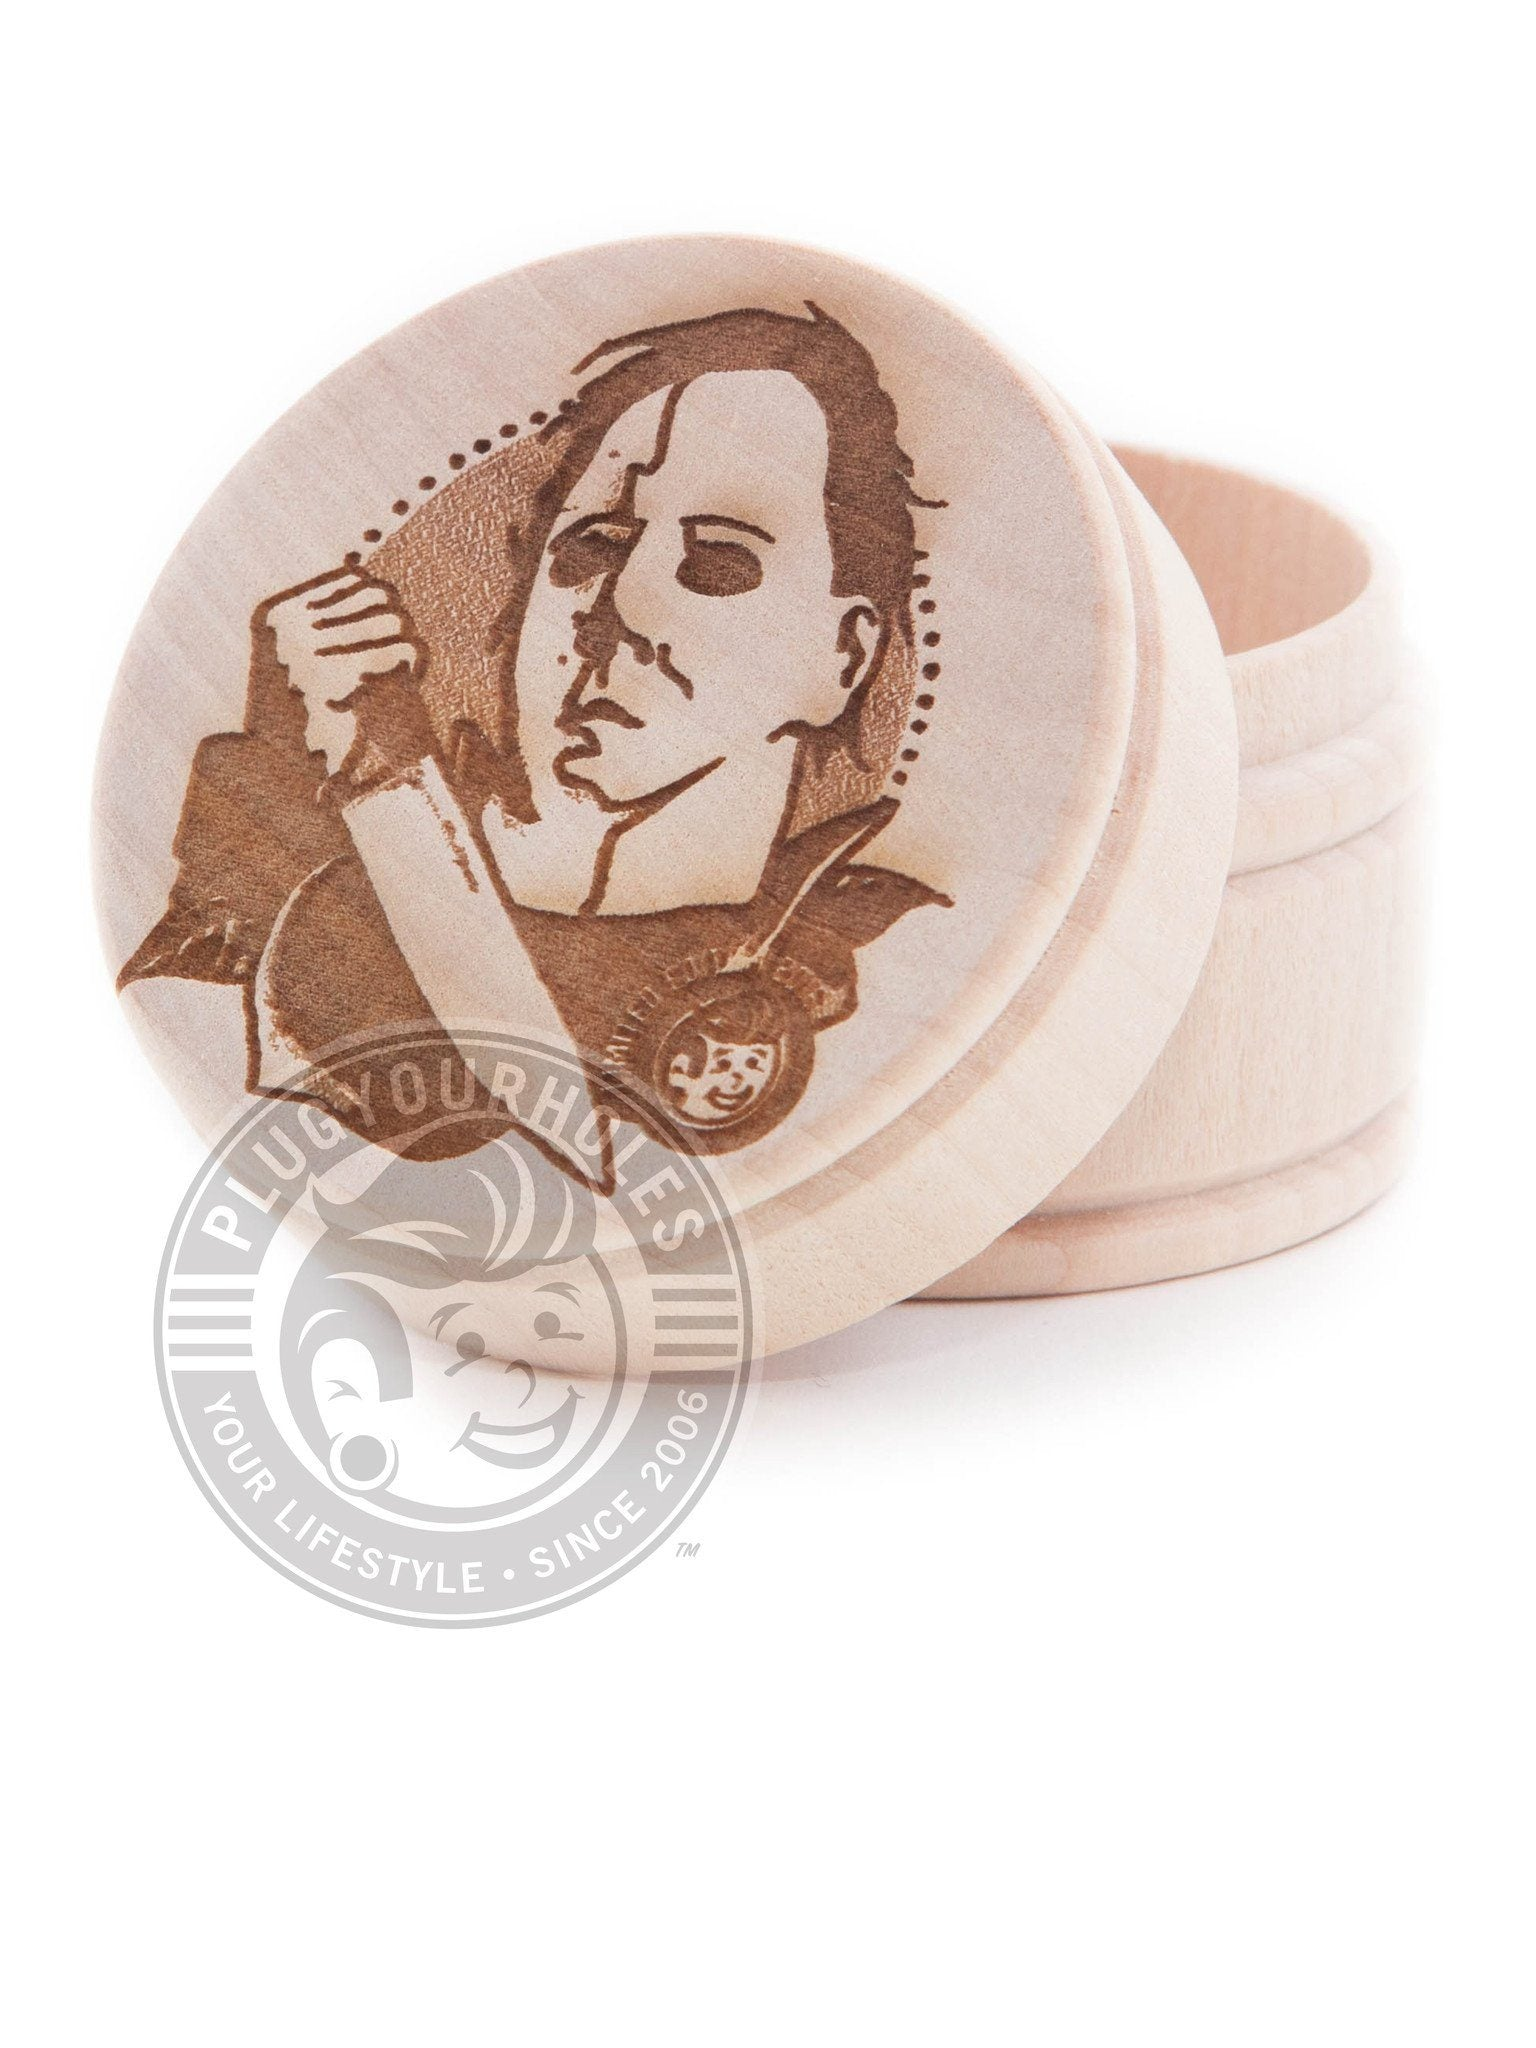 Michael Myers Engraved Plug Box - Limited Edition